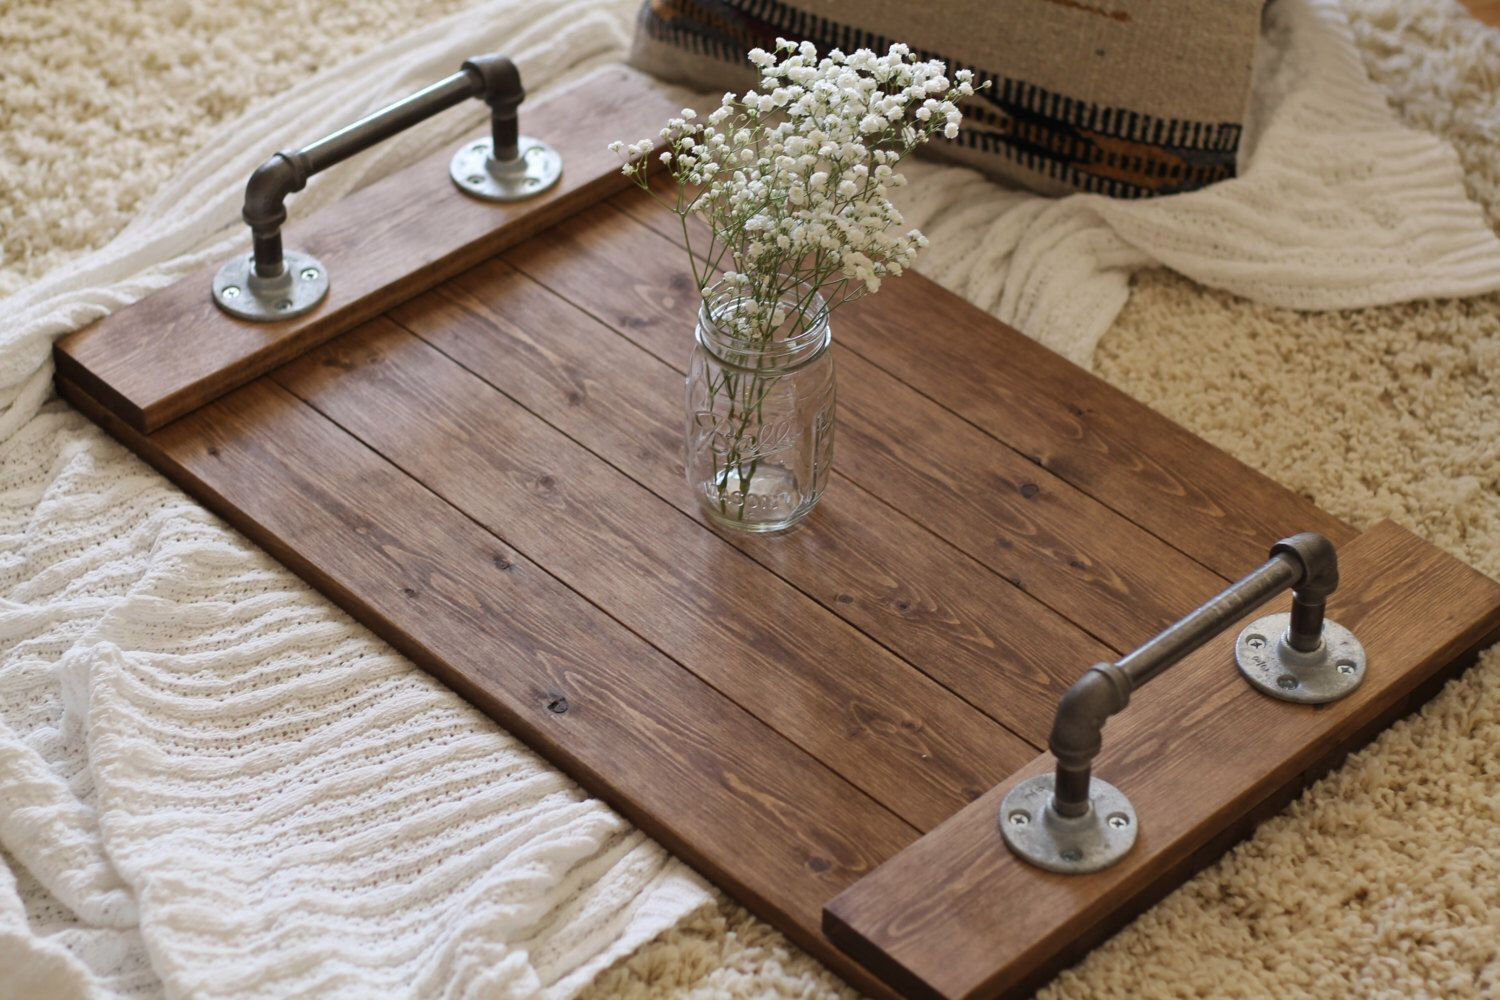 Rustic Industrial Tray Wooden Tray Ottoman Tray Coffee Table Tray